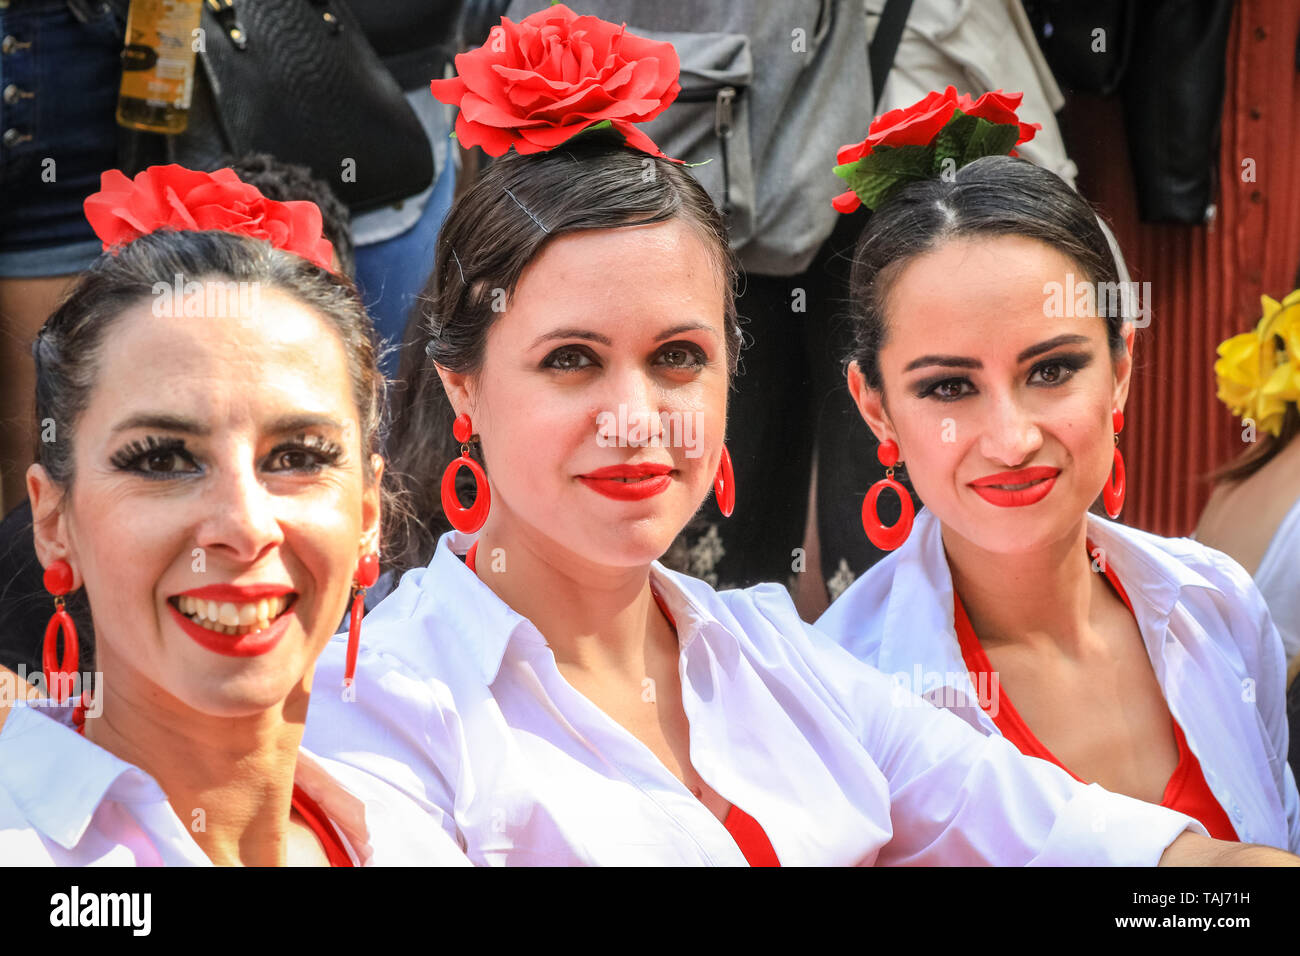 South Bank, London, UK - 25th May 2019. Three beautifully dressed flamenco dancers take a rest on the lawn. The Feria de Londres is a free festival on London's South Bank presenting Spanish culture, dance, music, wine and food from May 24-26. Credit: Imageplotter/Alamy Live News - Stock Image